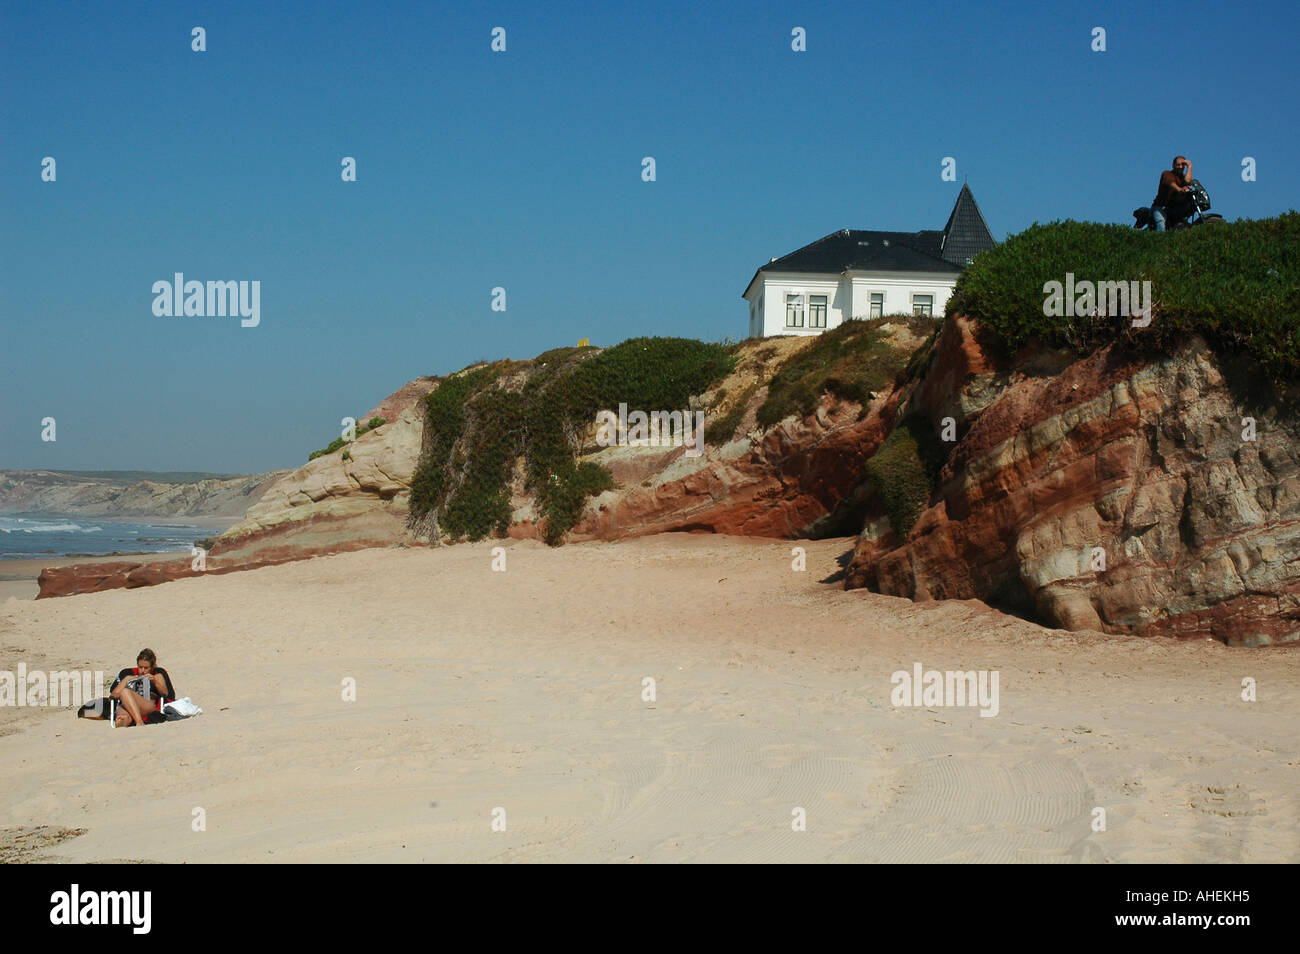 The beach of Baleal a small island located 3 kilometres north of Peniche, in the western region of Portugal - Stock Image